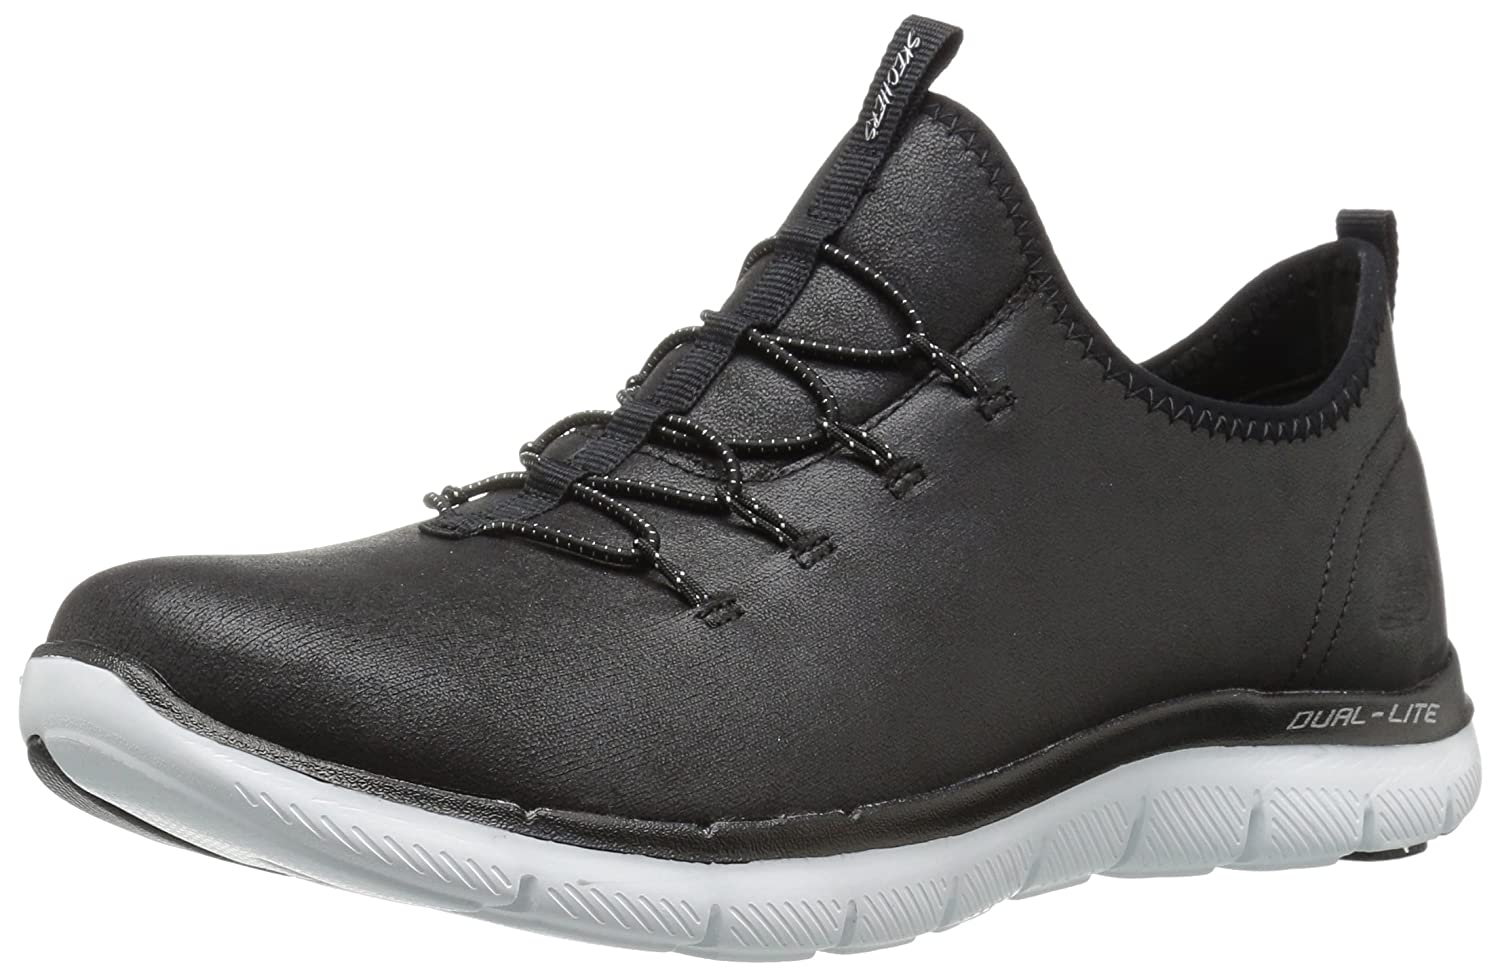 Skechers Women's Flex 5.5 Appeal 2.0 Top Story Sneaker B071X81X62 5.5 Flex B(M) US|Black f99753